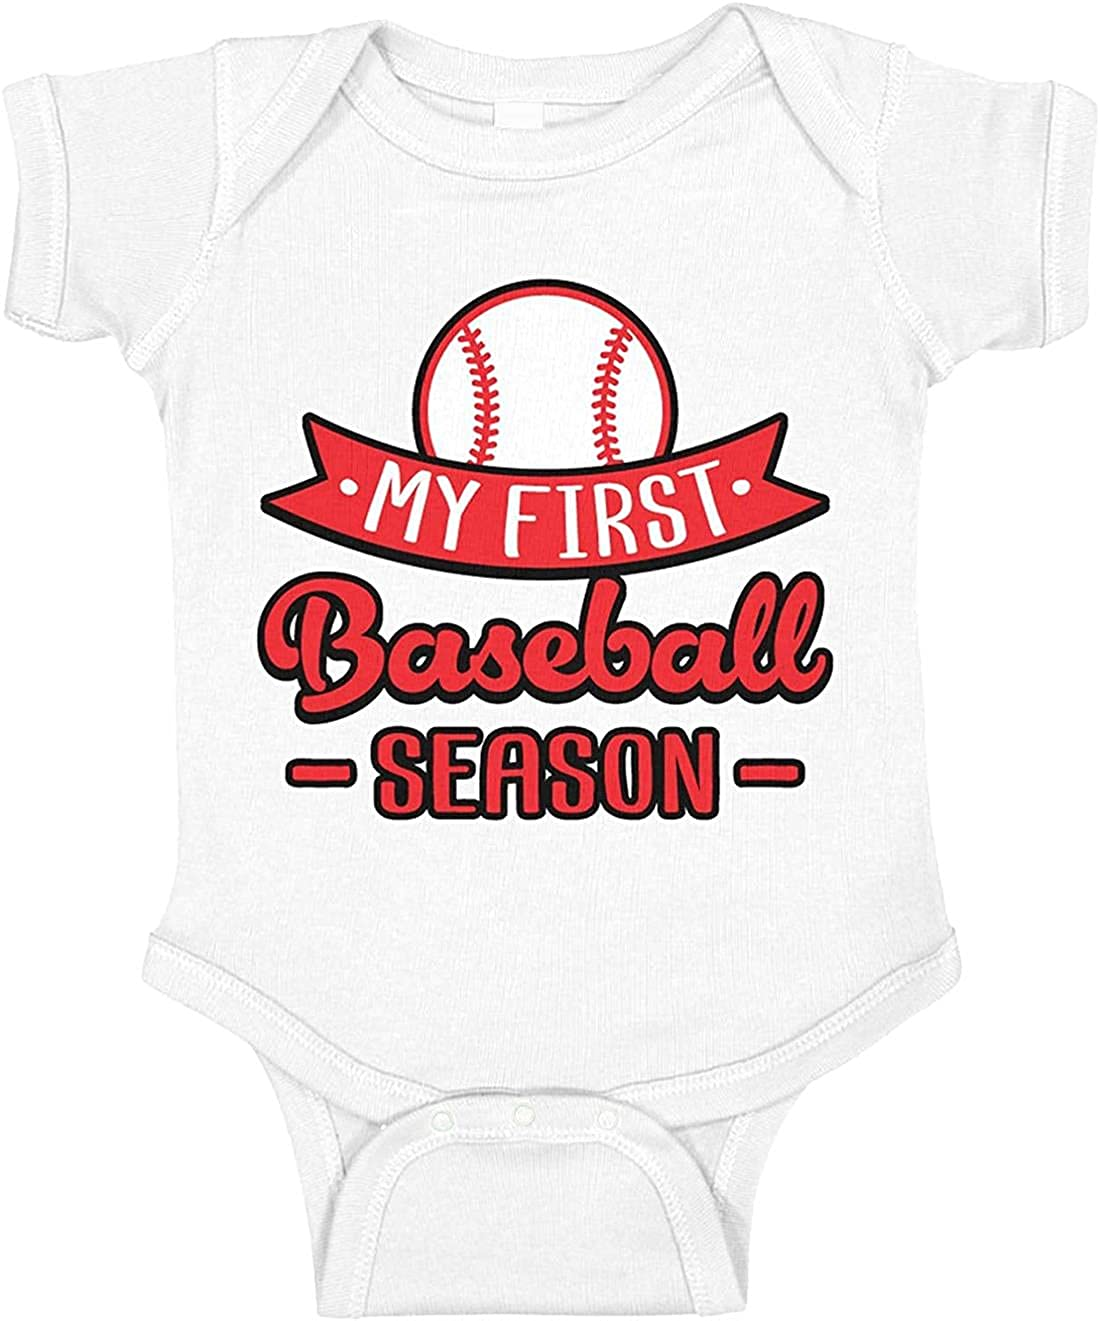 My First Baseball Season Summer Onesies Infant Girl Baby Printed Factory Our shop most popular outlet